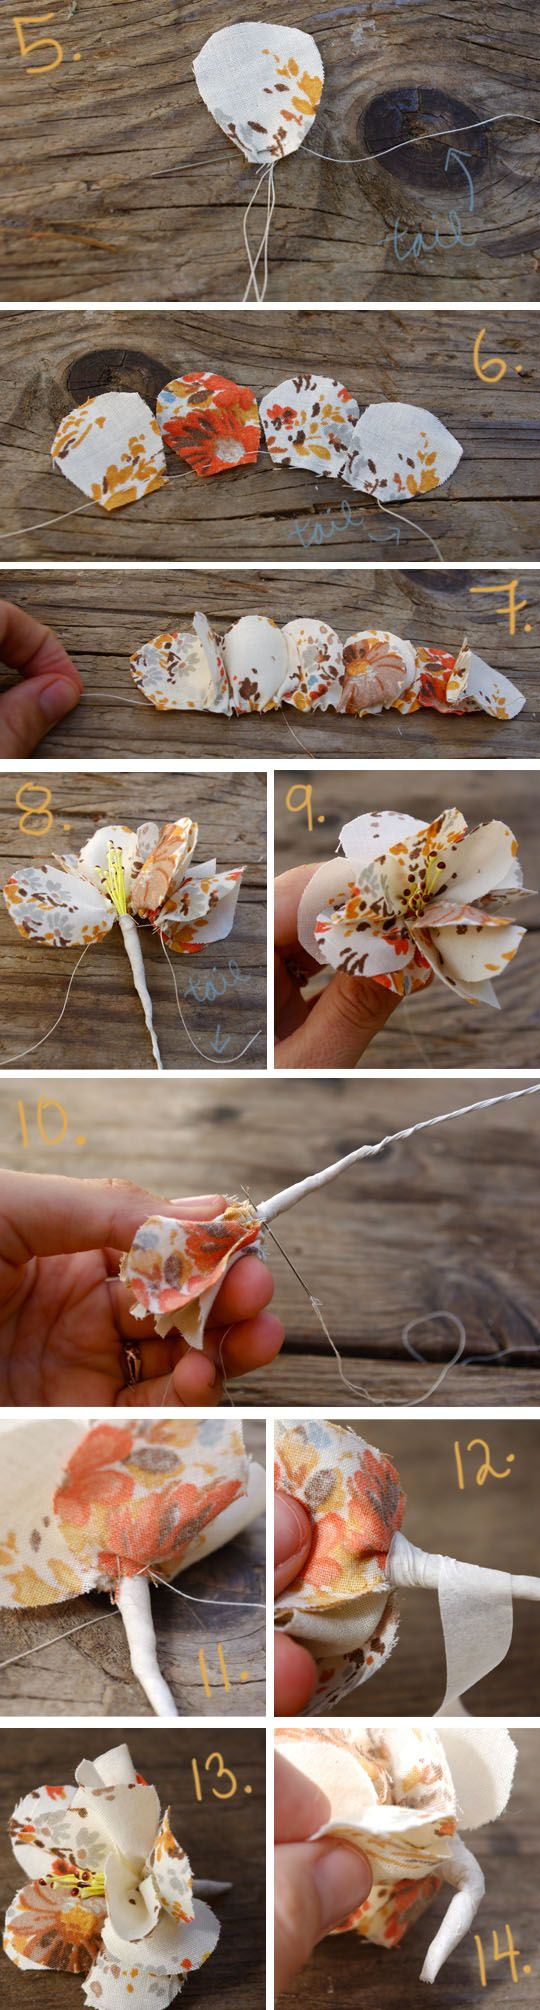 fabric flower boutonniere/corsage---http://www.nothingnewtreasures.com/2012/10/09/fabric-corsages-and-boutonniere/